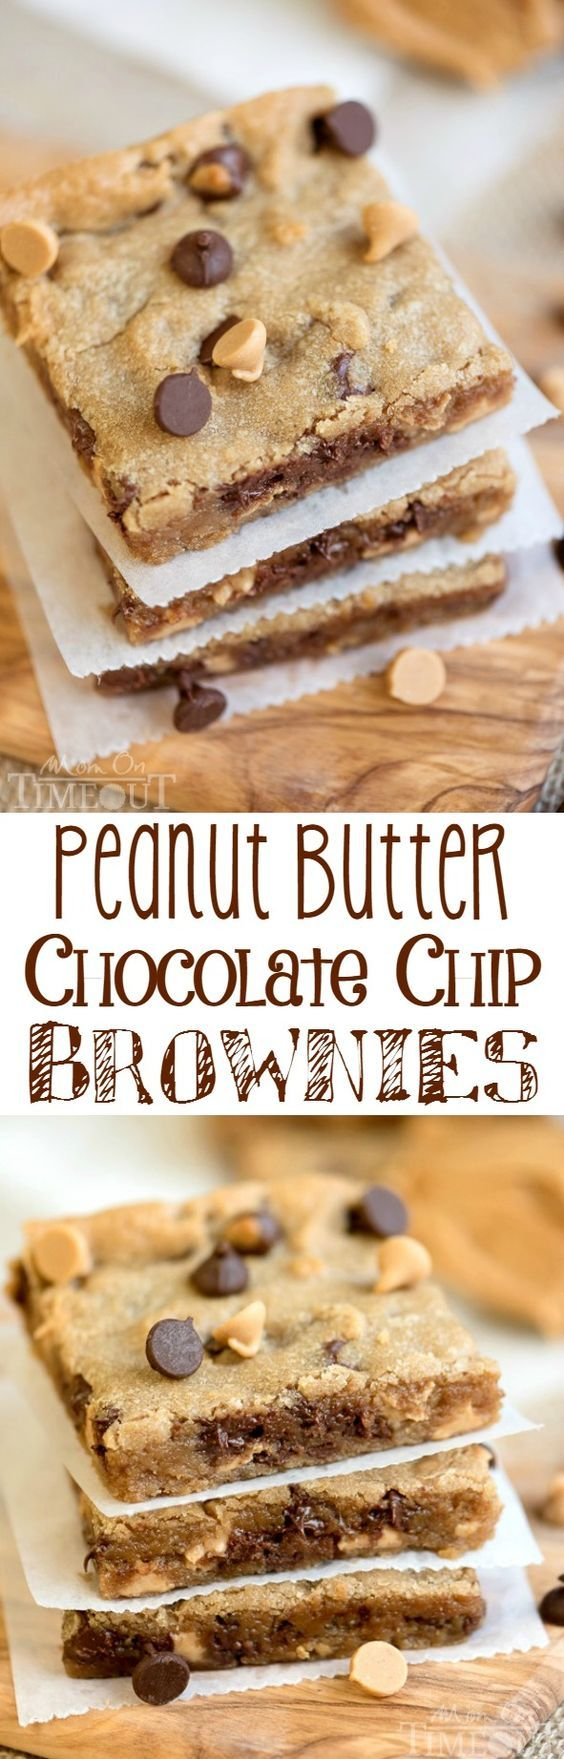 Perfectly moist, decadent, and fudgy, these sinful Peanut Butter Chocolate Chip Brownies will redefine your love for peanut butter. The perfect easy dessert recipe for peanut butter and chocolate lovers!  MomOnTimeout.com